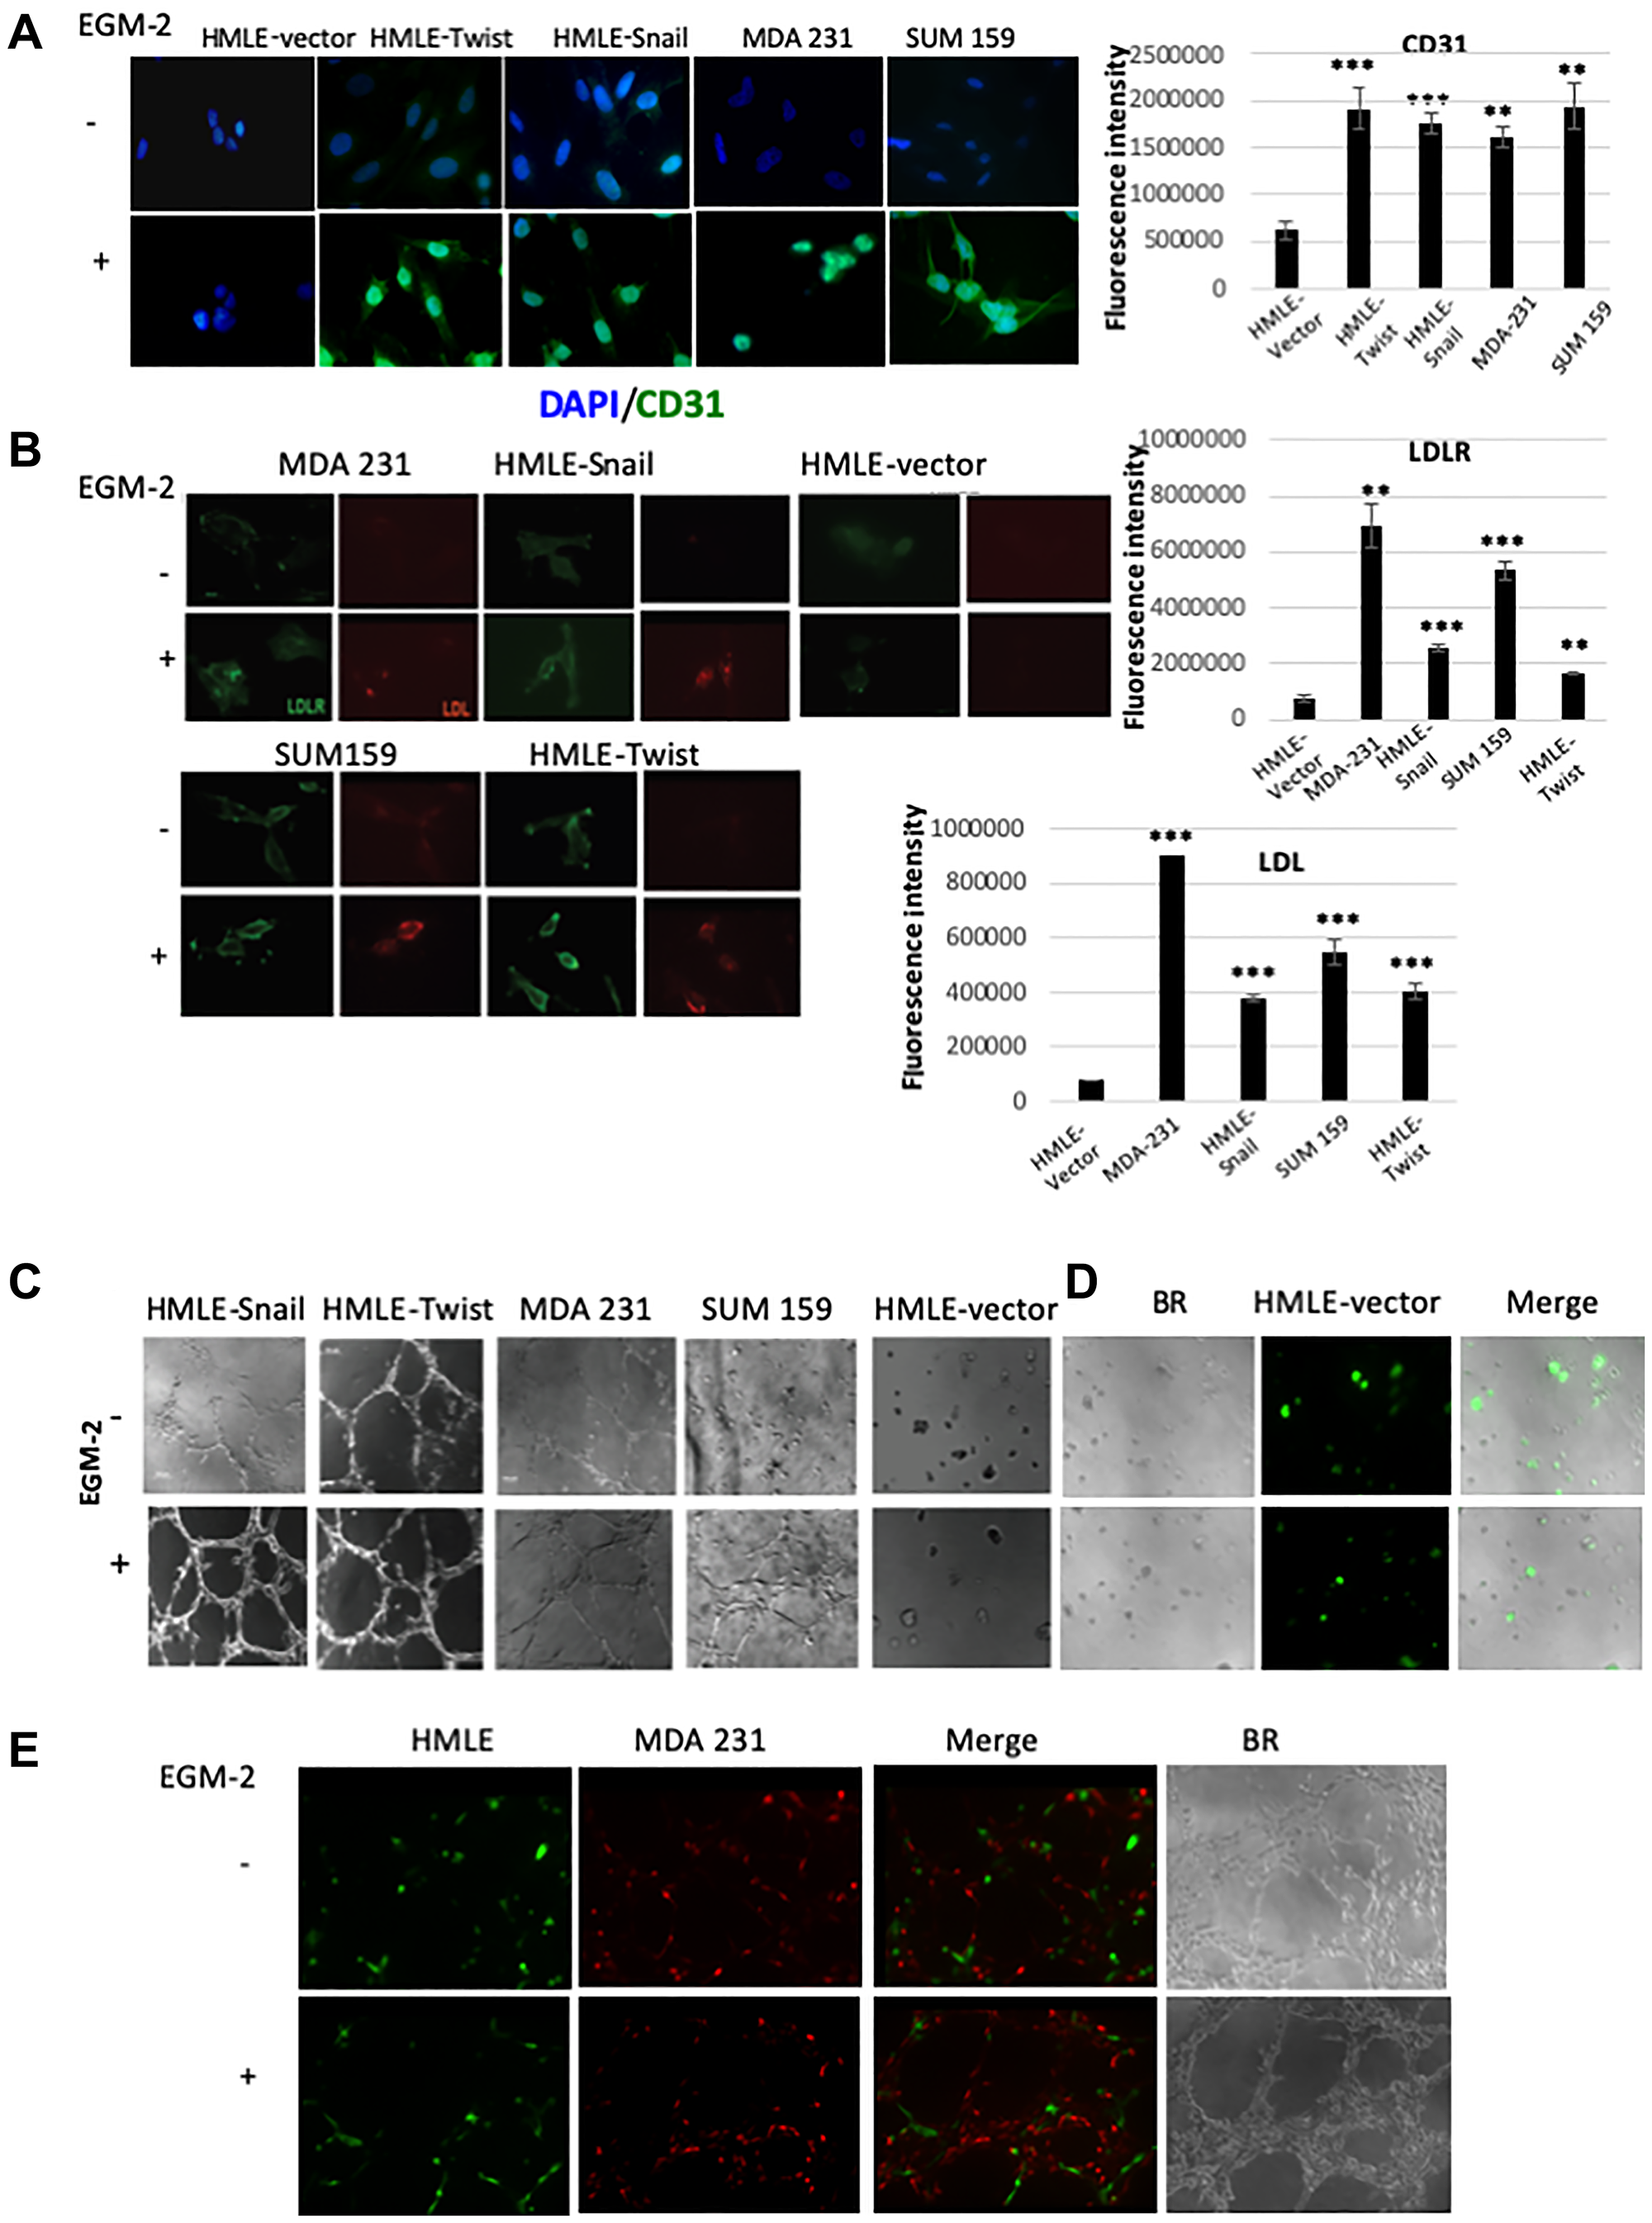 Cells that have undergone EMT can acquire endothelial-like phenotypic traits and functional behaviors in vitro.